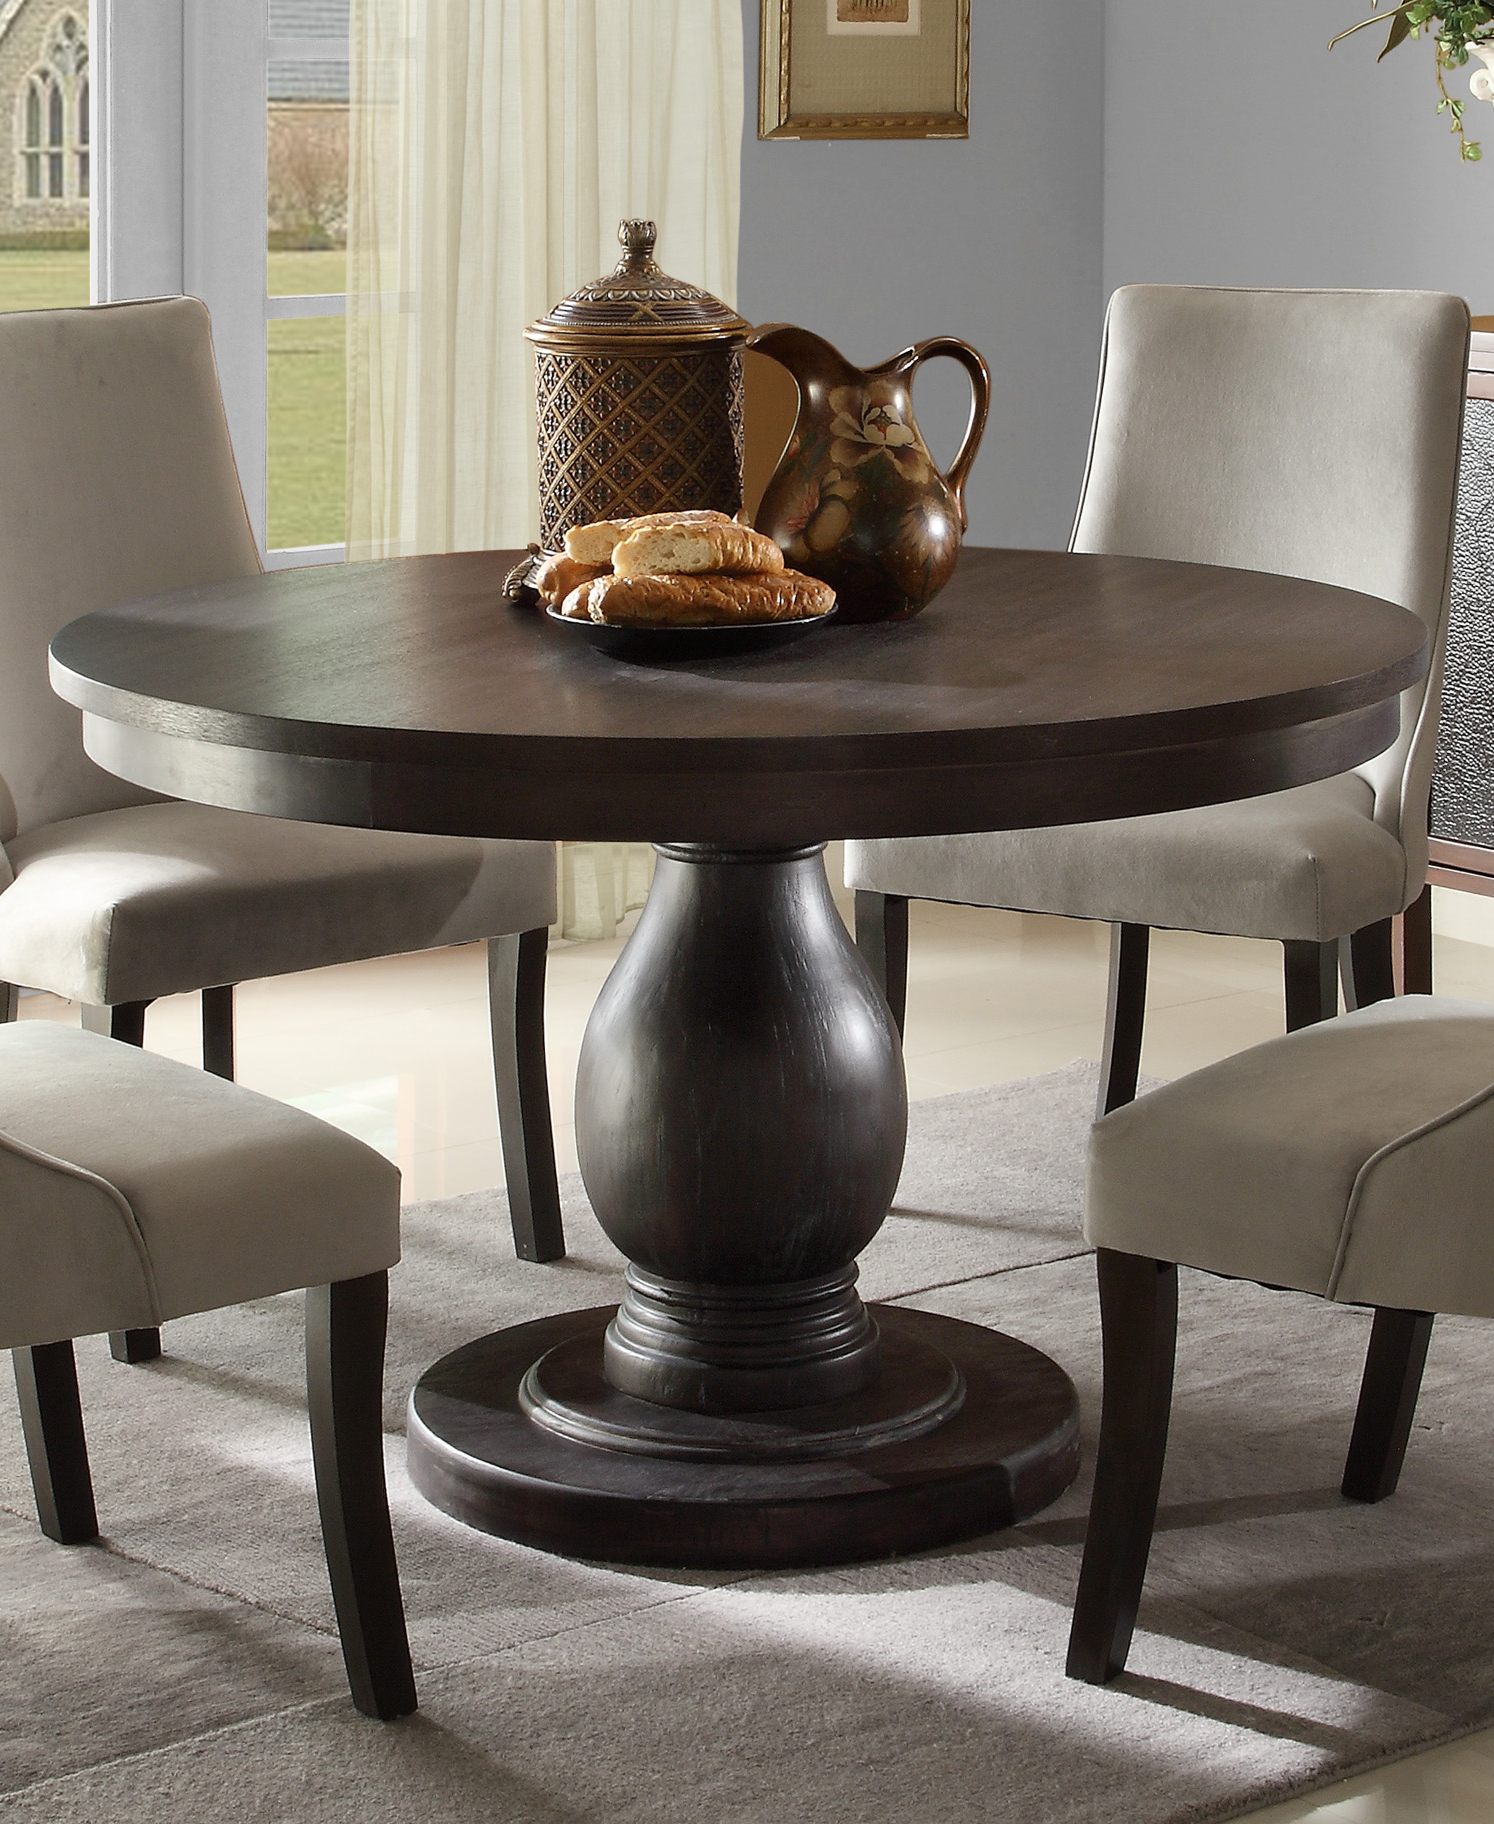 Dining Room Furniture Dallas Tx: Homelegance Dandelion Dining Table Dallas TX